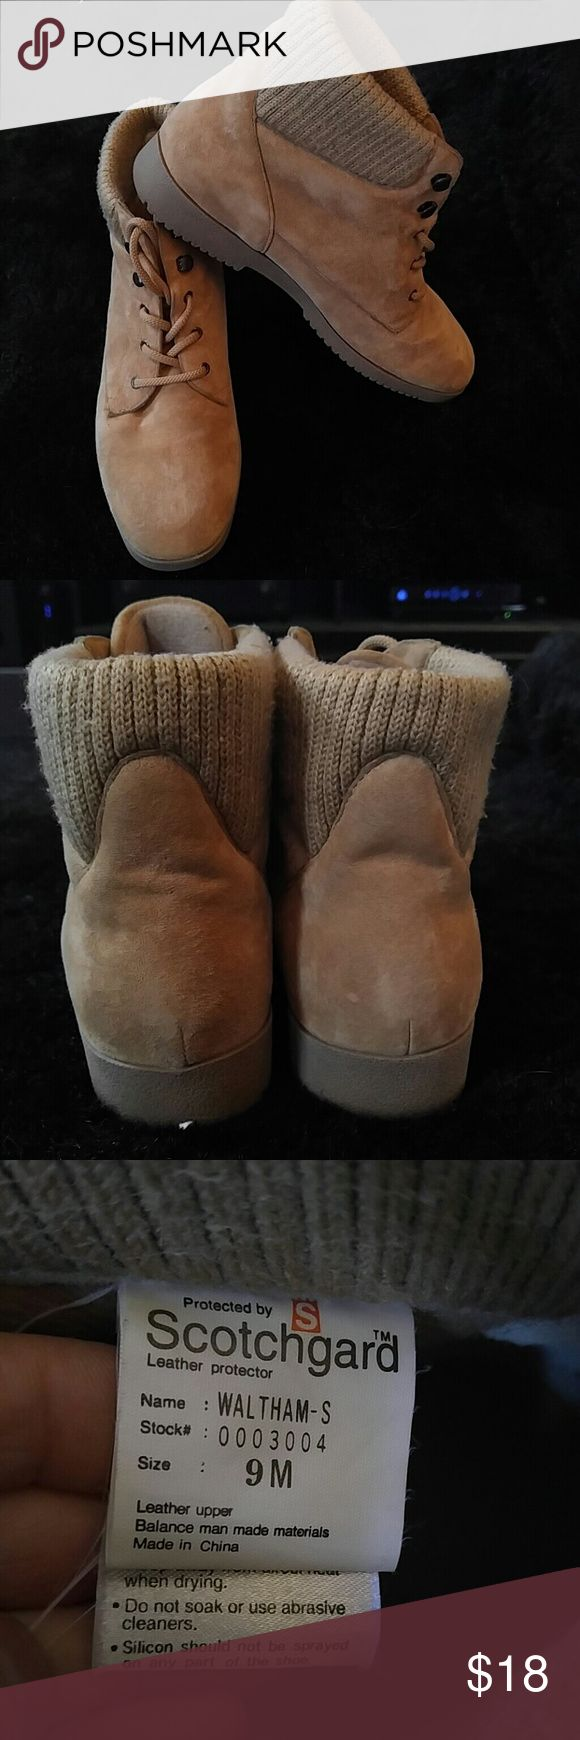 Cute leather boots. Really cute boots. Leather, scotchgard protected. In very good condition. 1 small spot on side of right boot. Please see picture Boston Accent Sport Shoes Ankle Boots & Booties